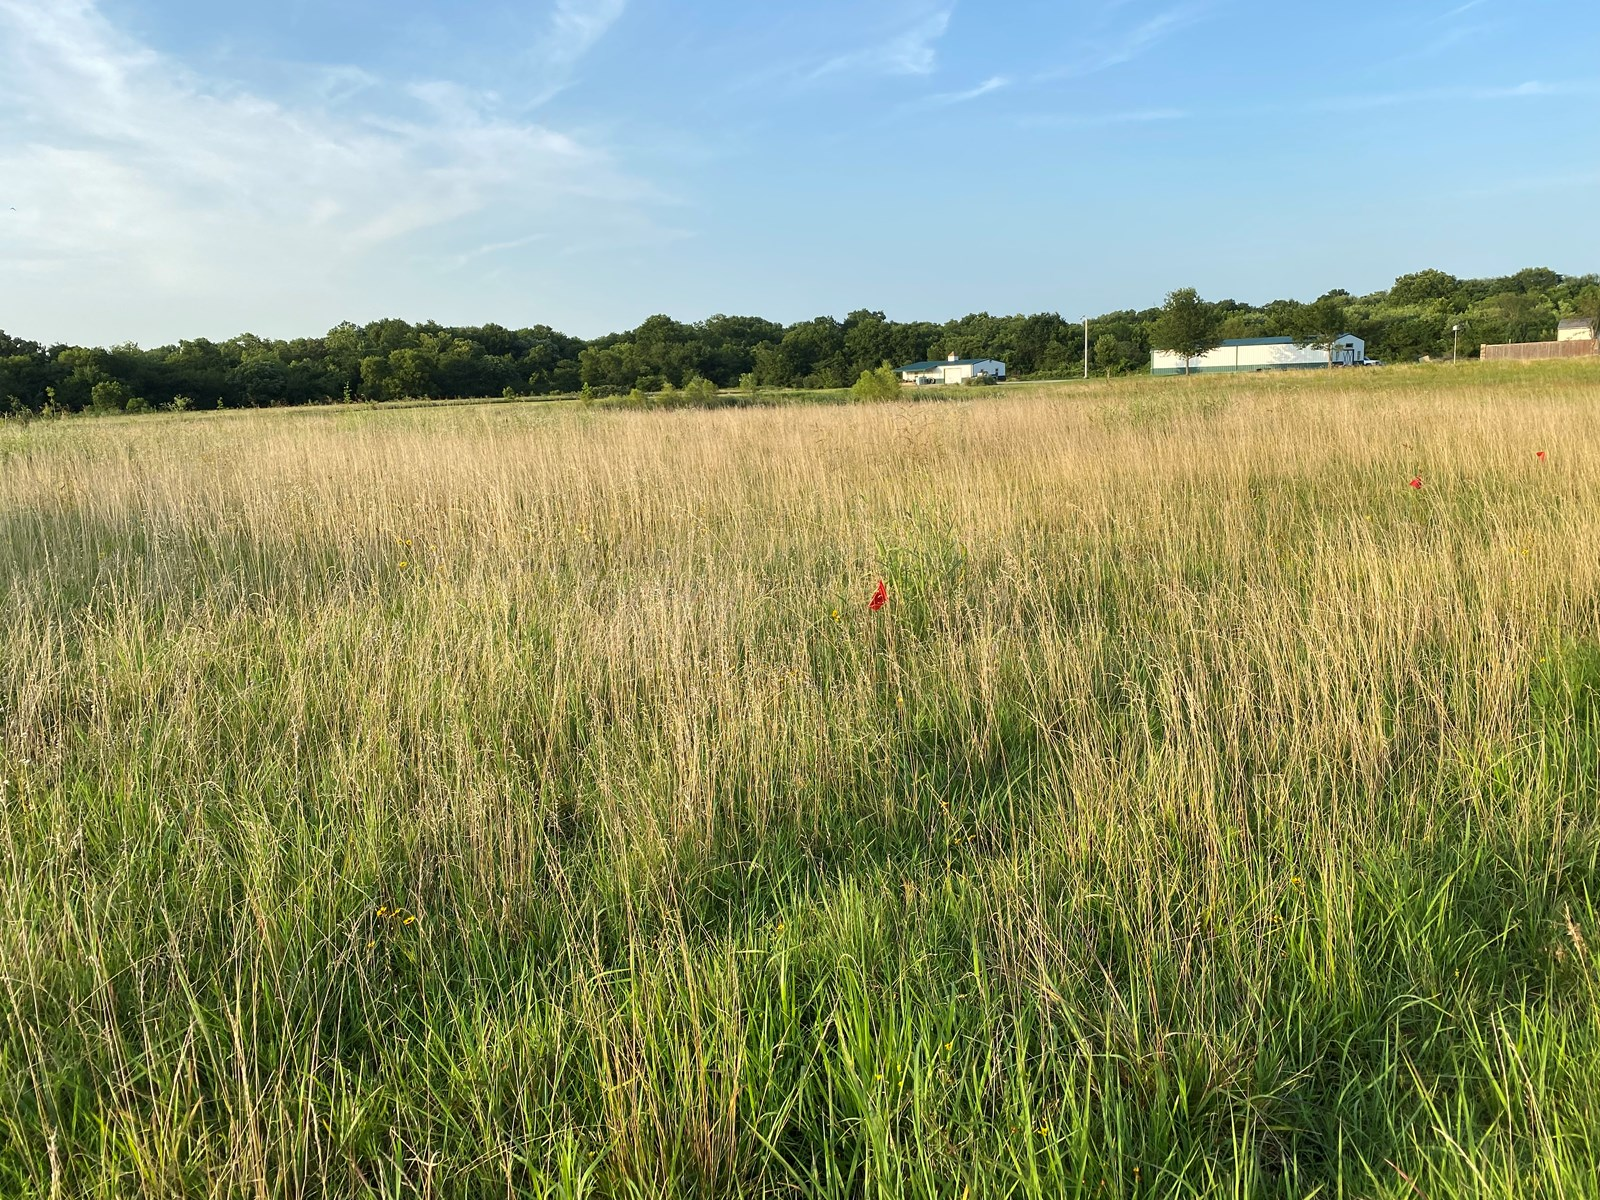 Home Building Lot For Sale in Pryor, Oklahoma